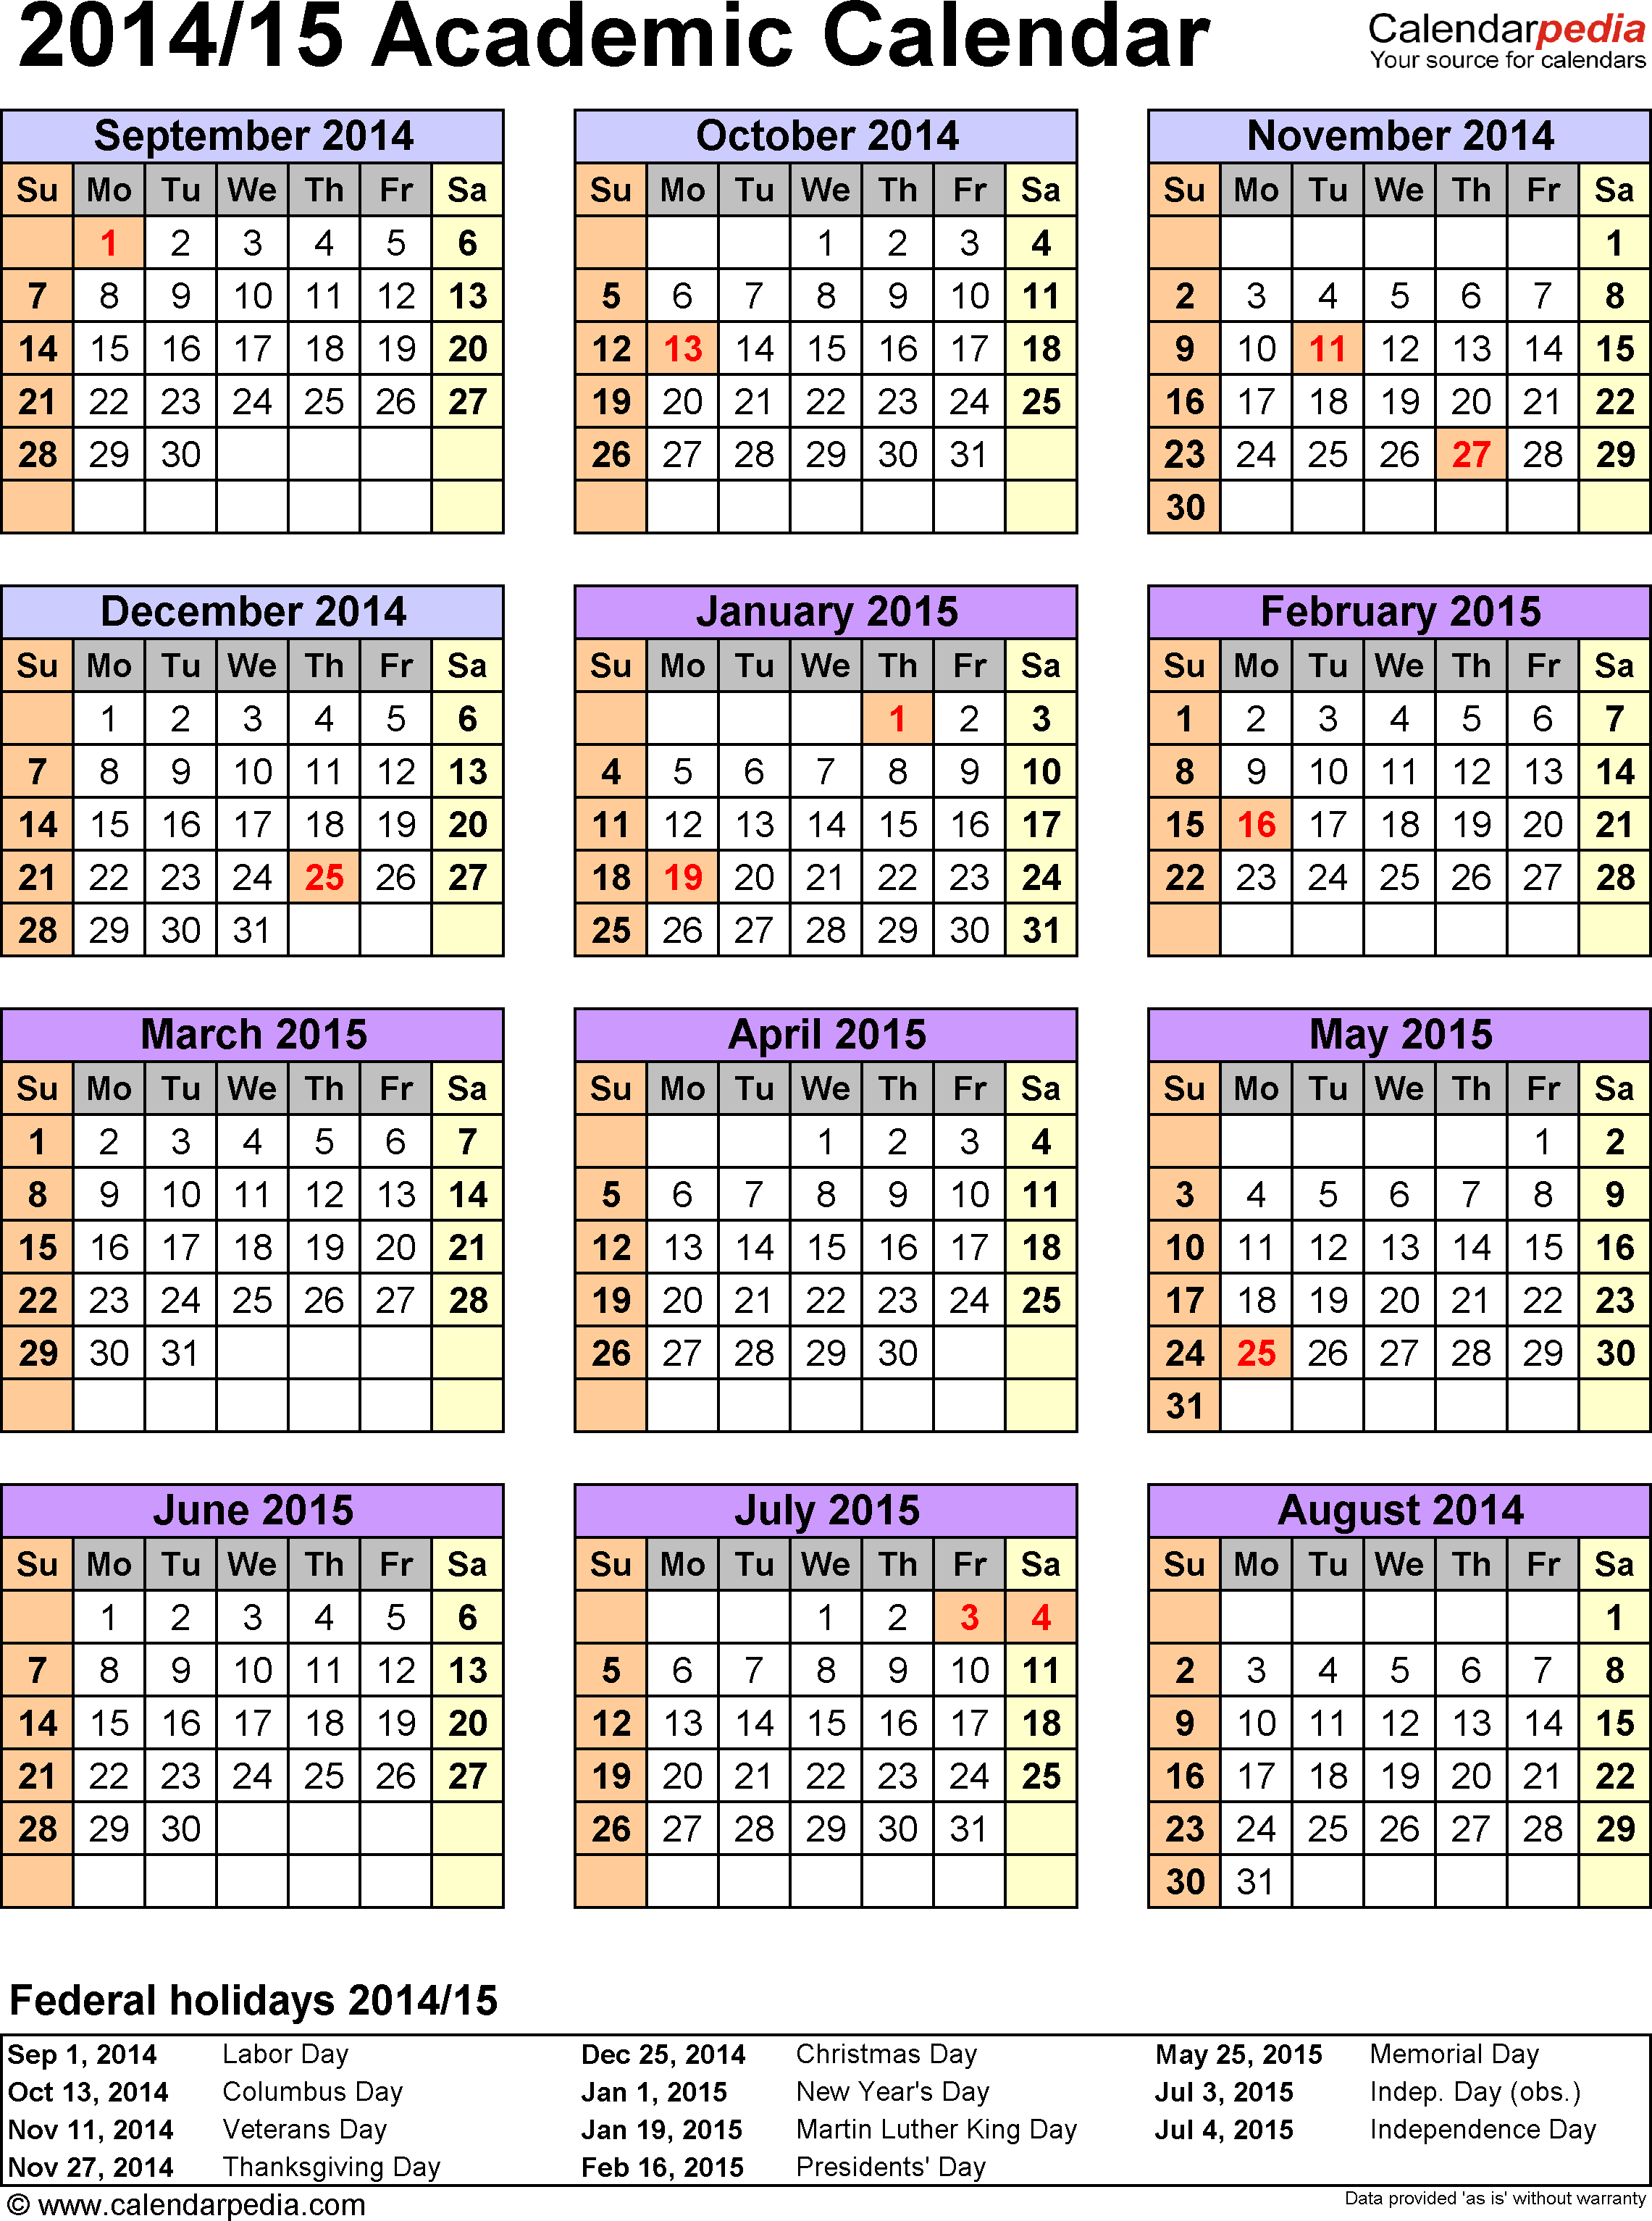 Template 5: Academic calendar 2014/15 for Word, portrait, 1 page, year at a glance